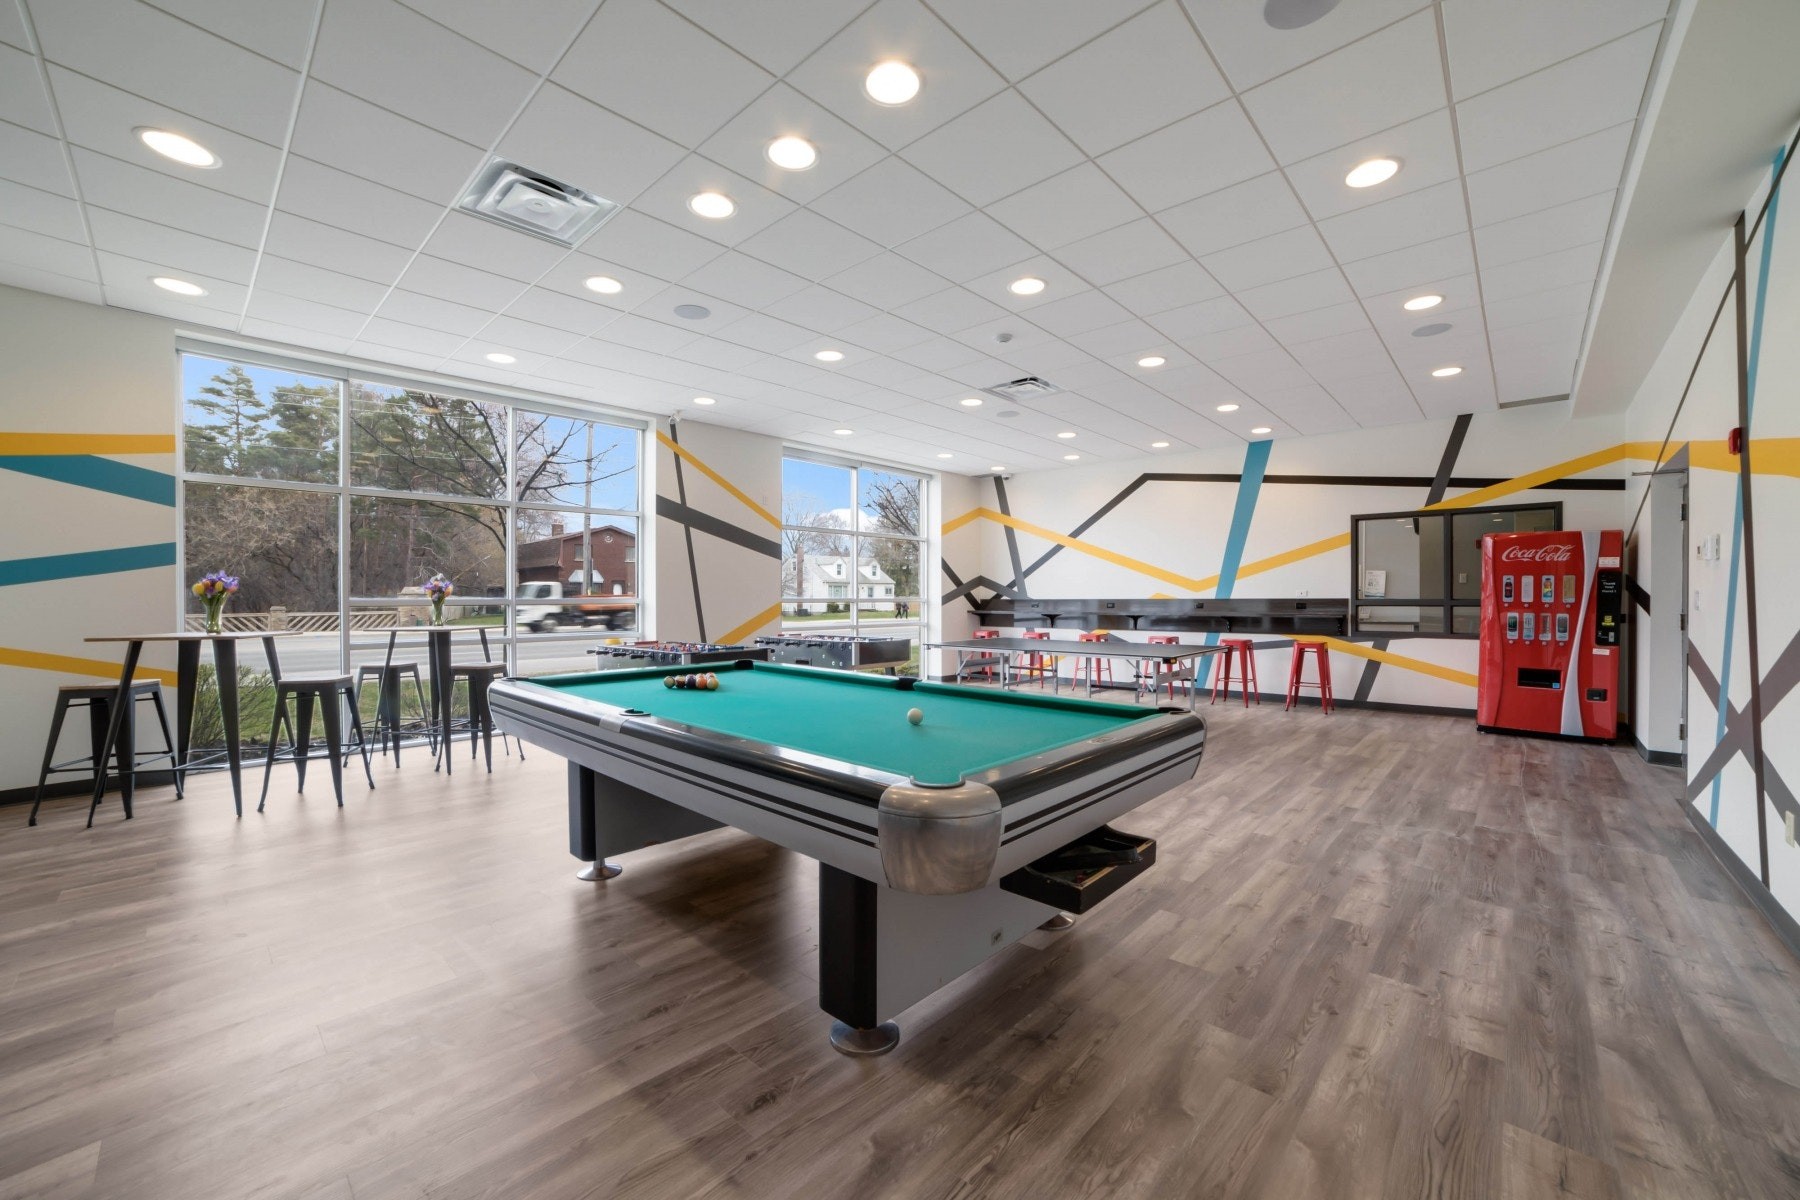 Games room with pool table and seating